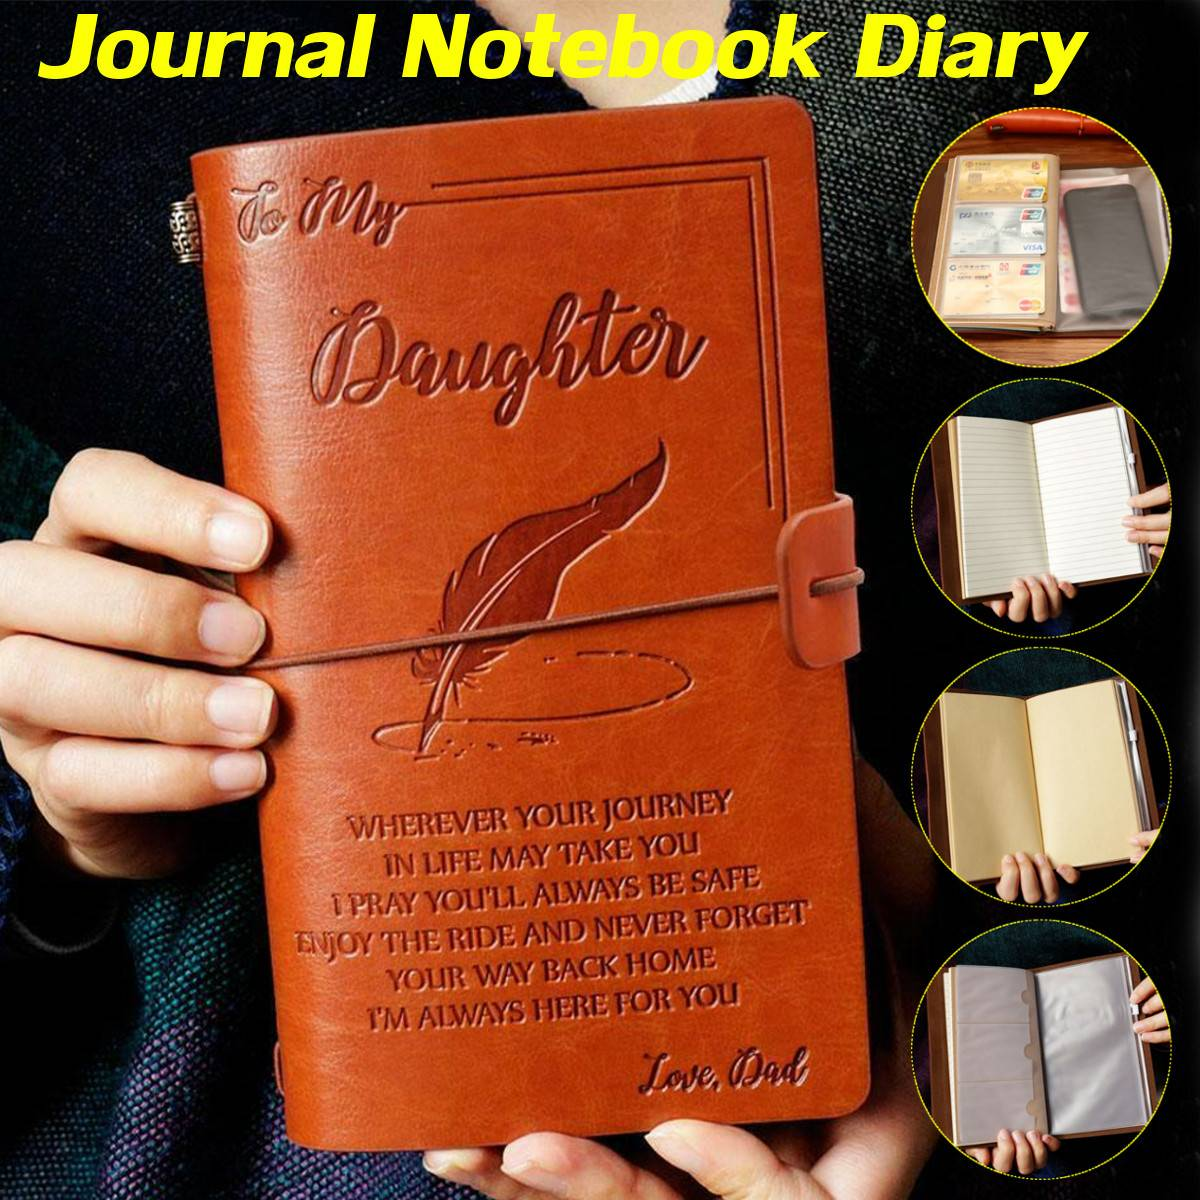 20x12cm Engraved Leather Journal Notebook Diary To My Daughter Face Challenges Love Dad Engraved Notebook Diary